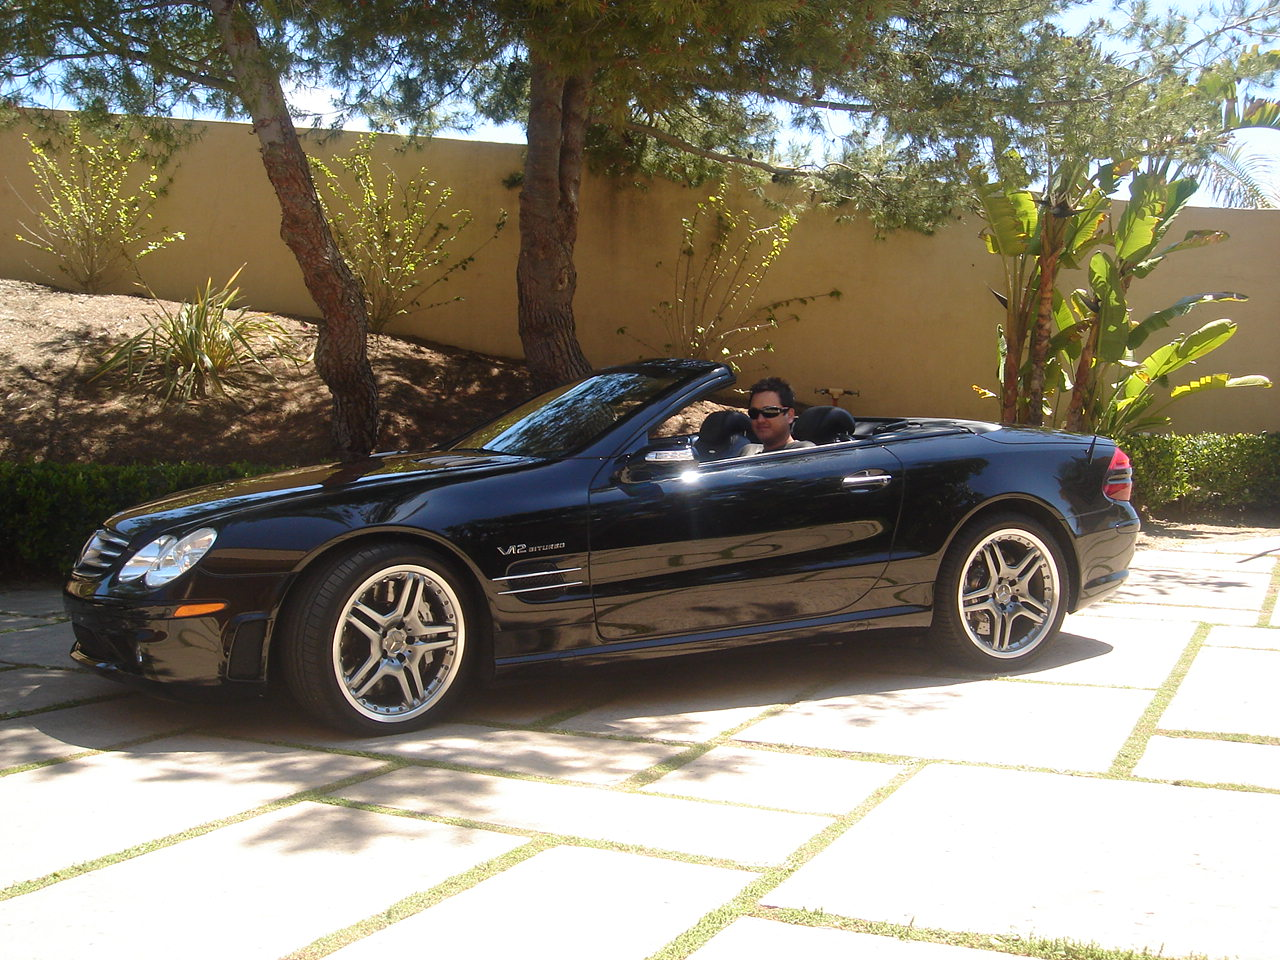 2005 mercedes benz sl class other pictures cargurus for 2005 mercedes benz sl500